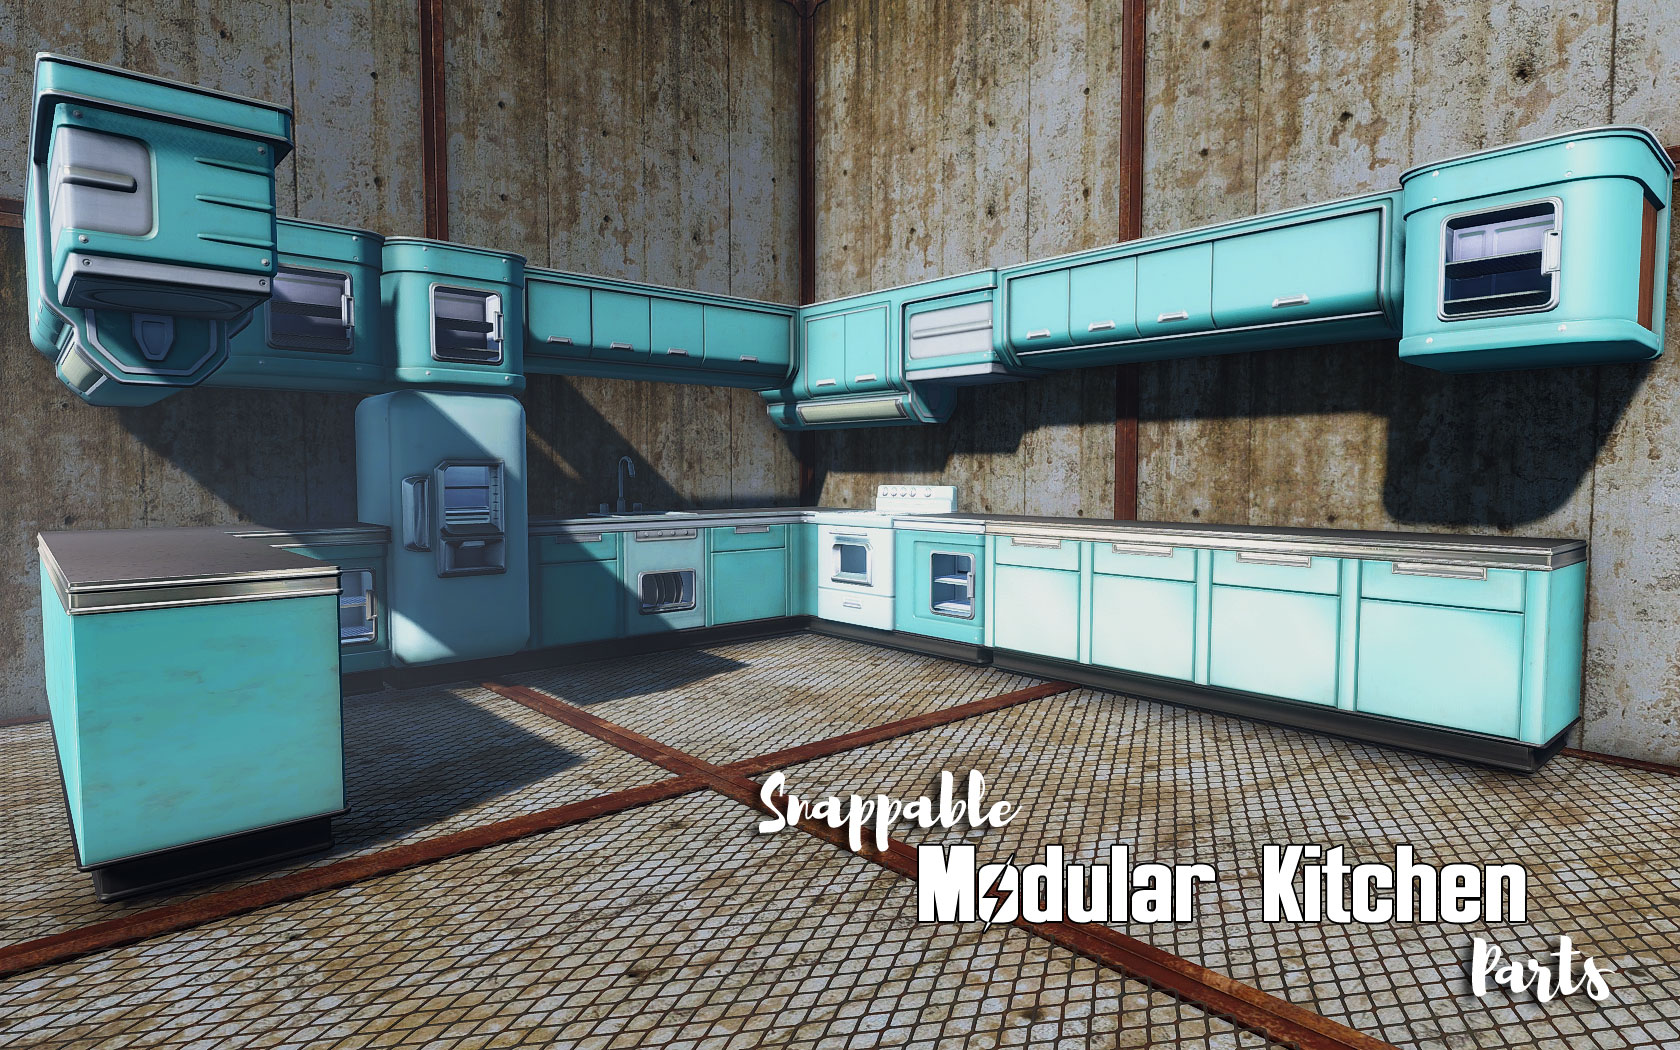 modular kitchen at fallout 4 nexus mods and community. Black Bedroom Furniture Sets. Home Design Ideas